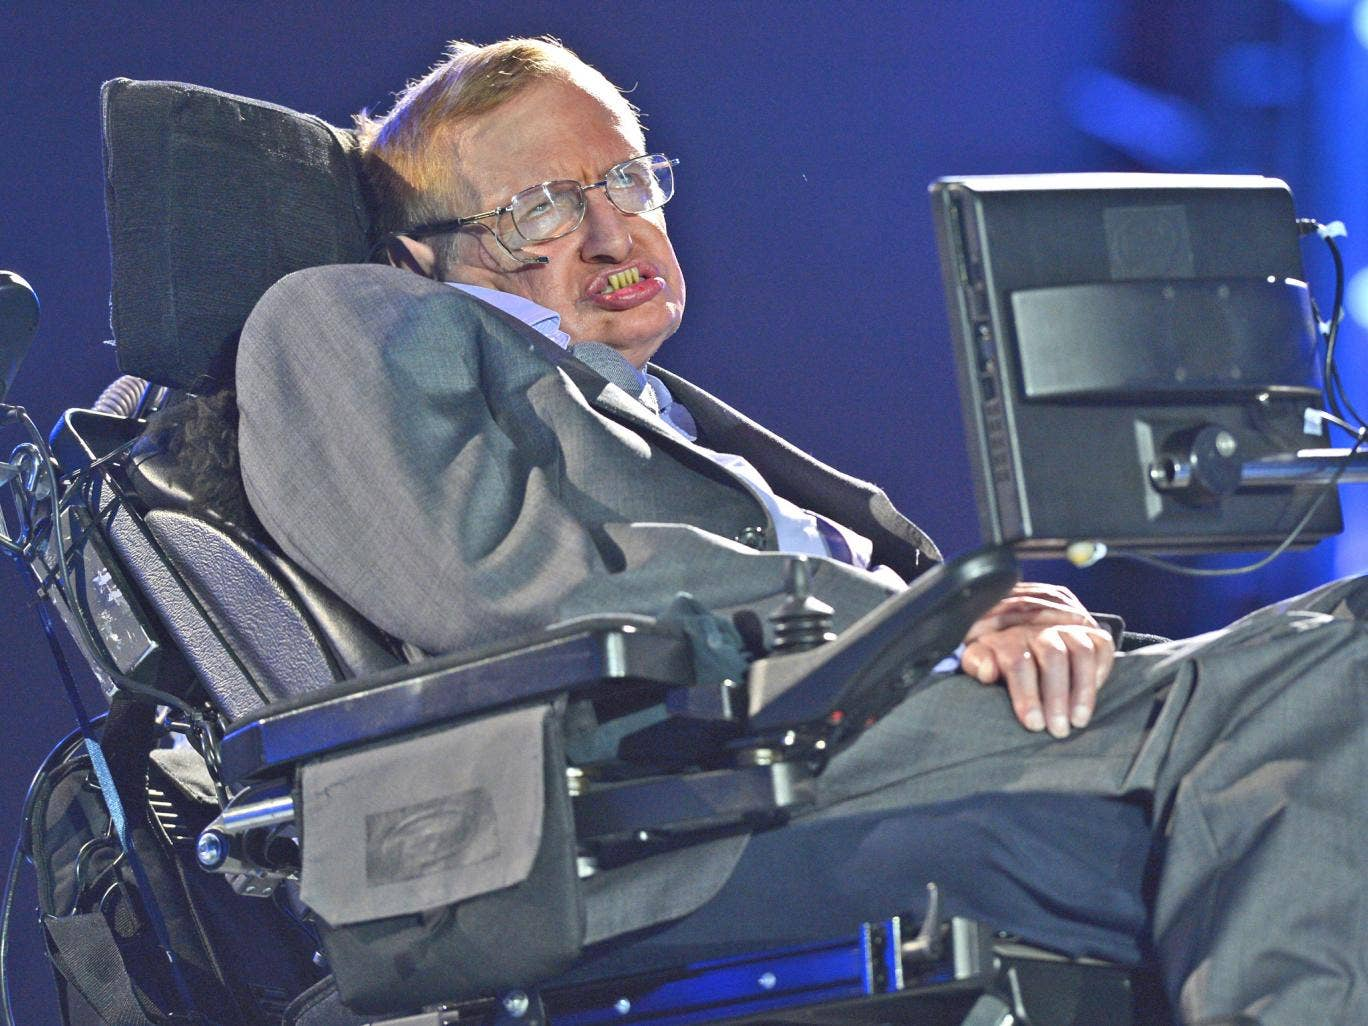 Stephen Hawking appears during the opening ceremony of the London 2012 Paralympic Games